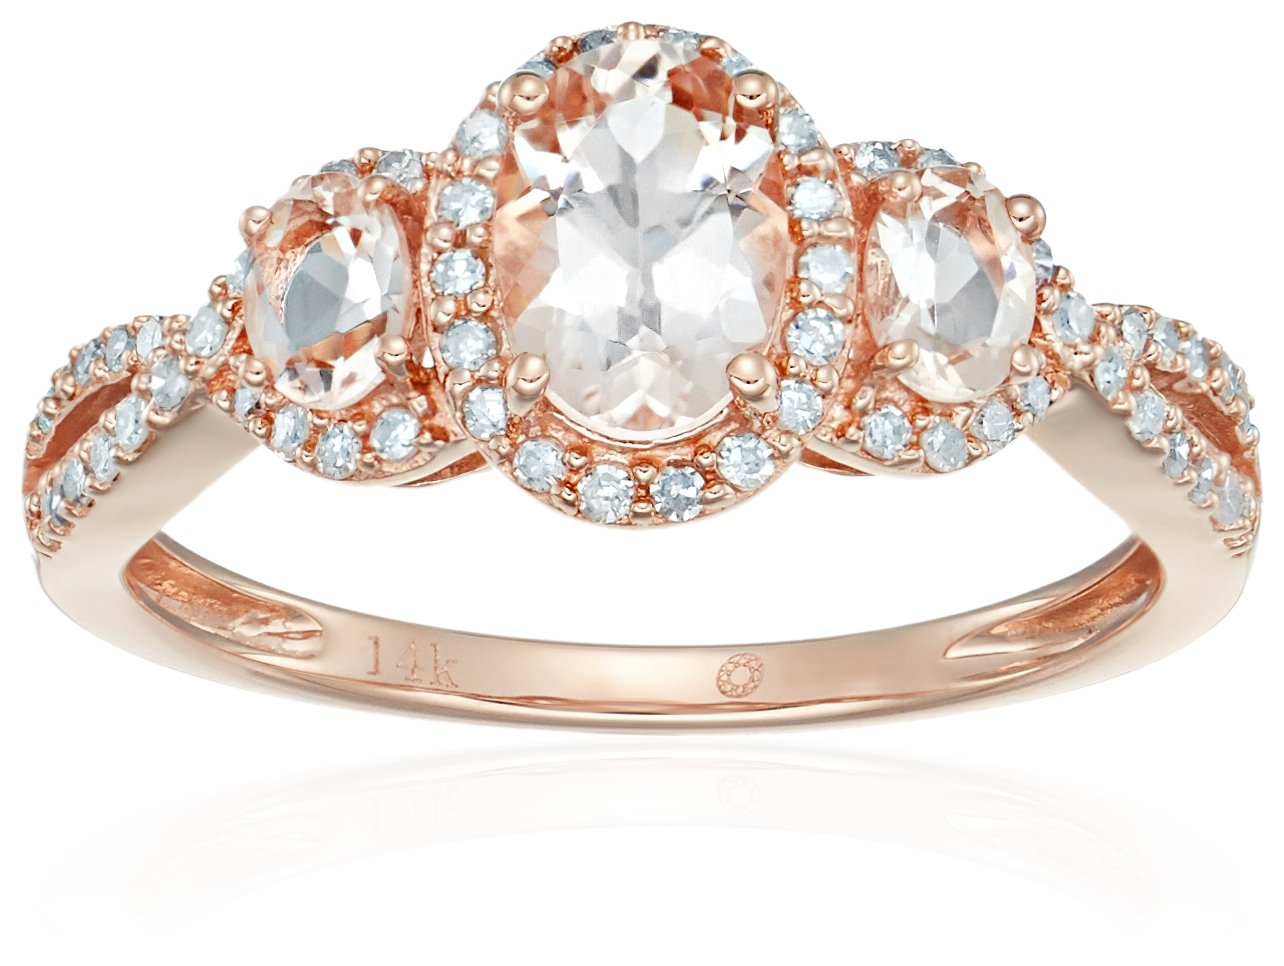 14k Rose Gold Morganite and Diamond 3-stone Halo Engagement Ring (1/4 cttw, H-I Color, I1-I2 Clarity), Size 7